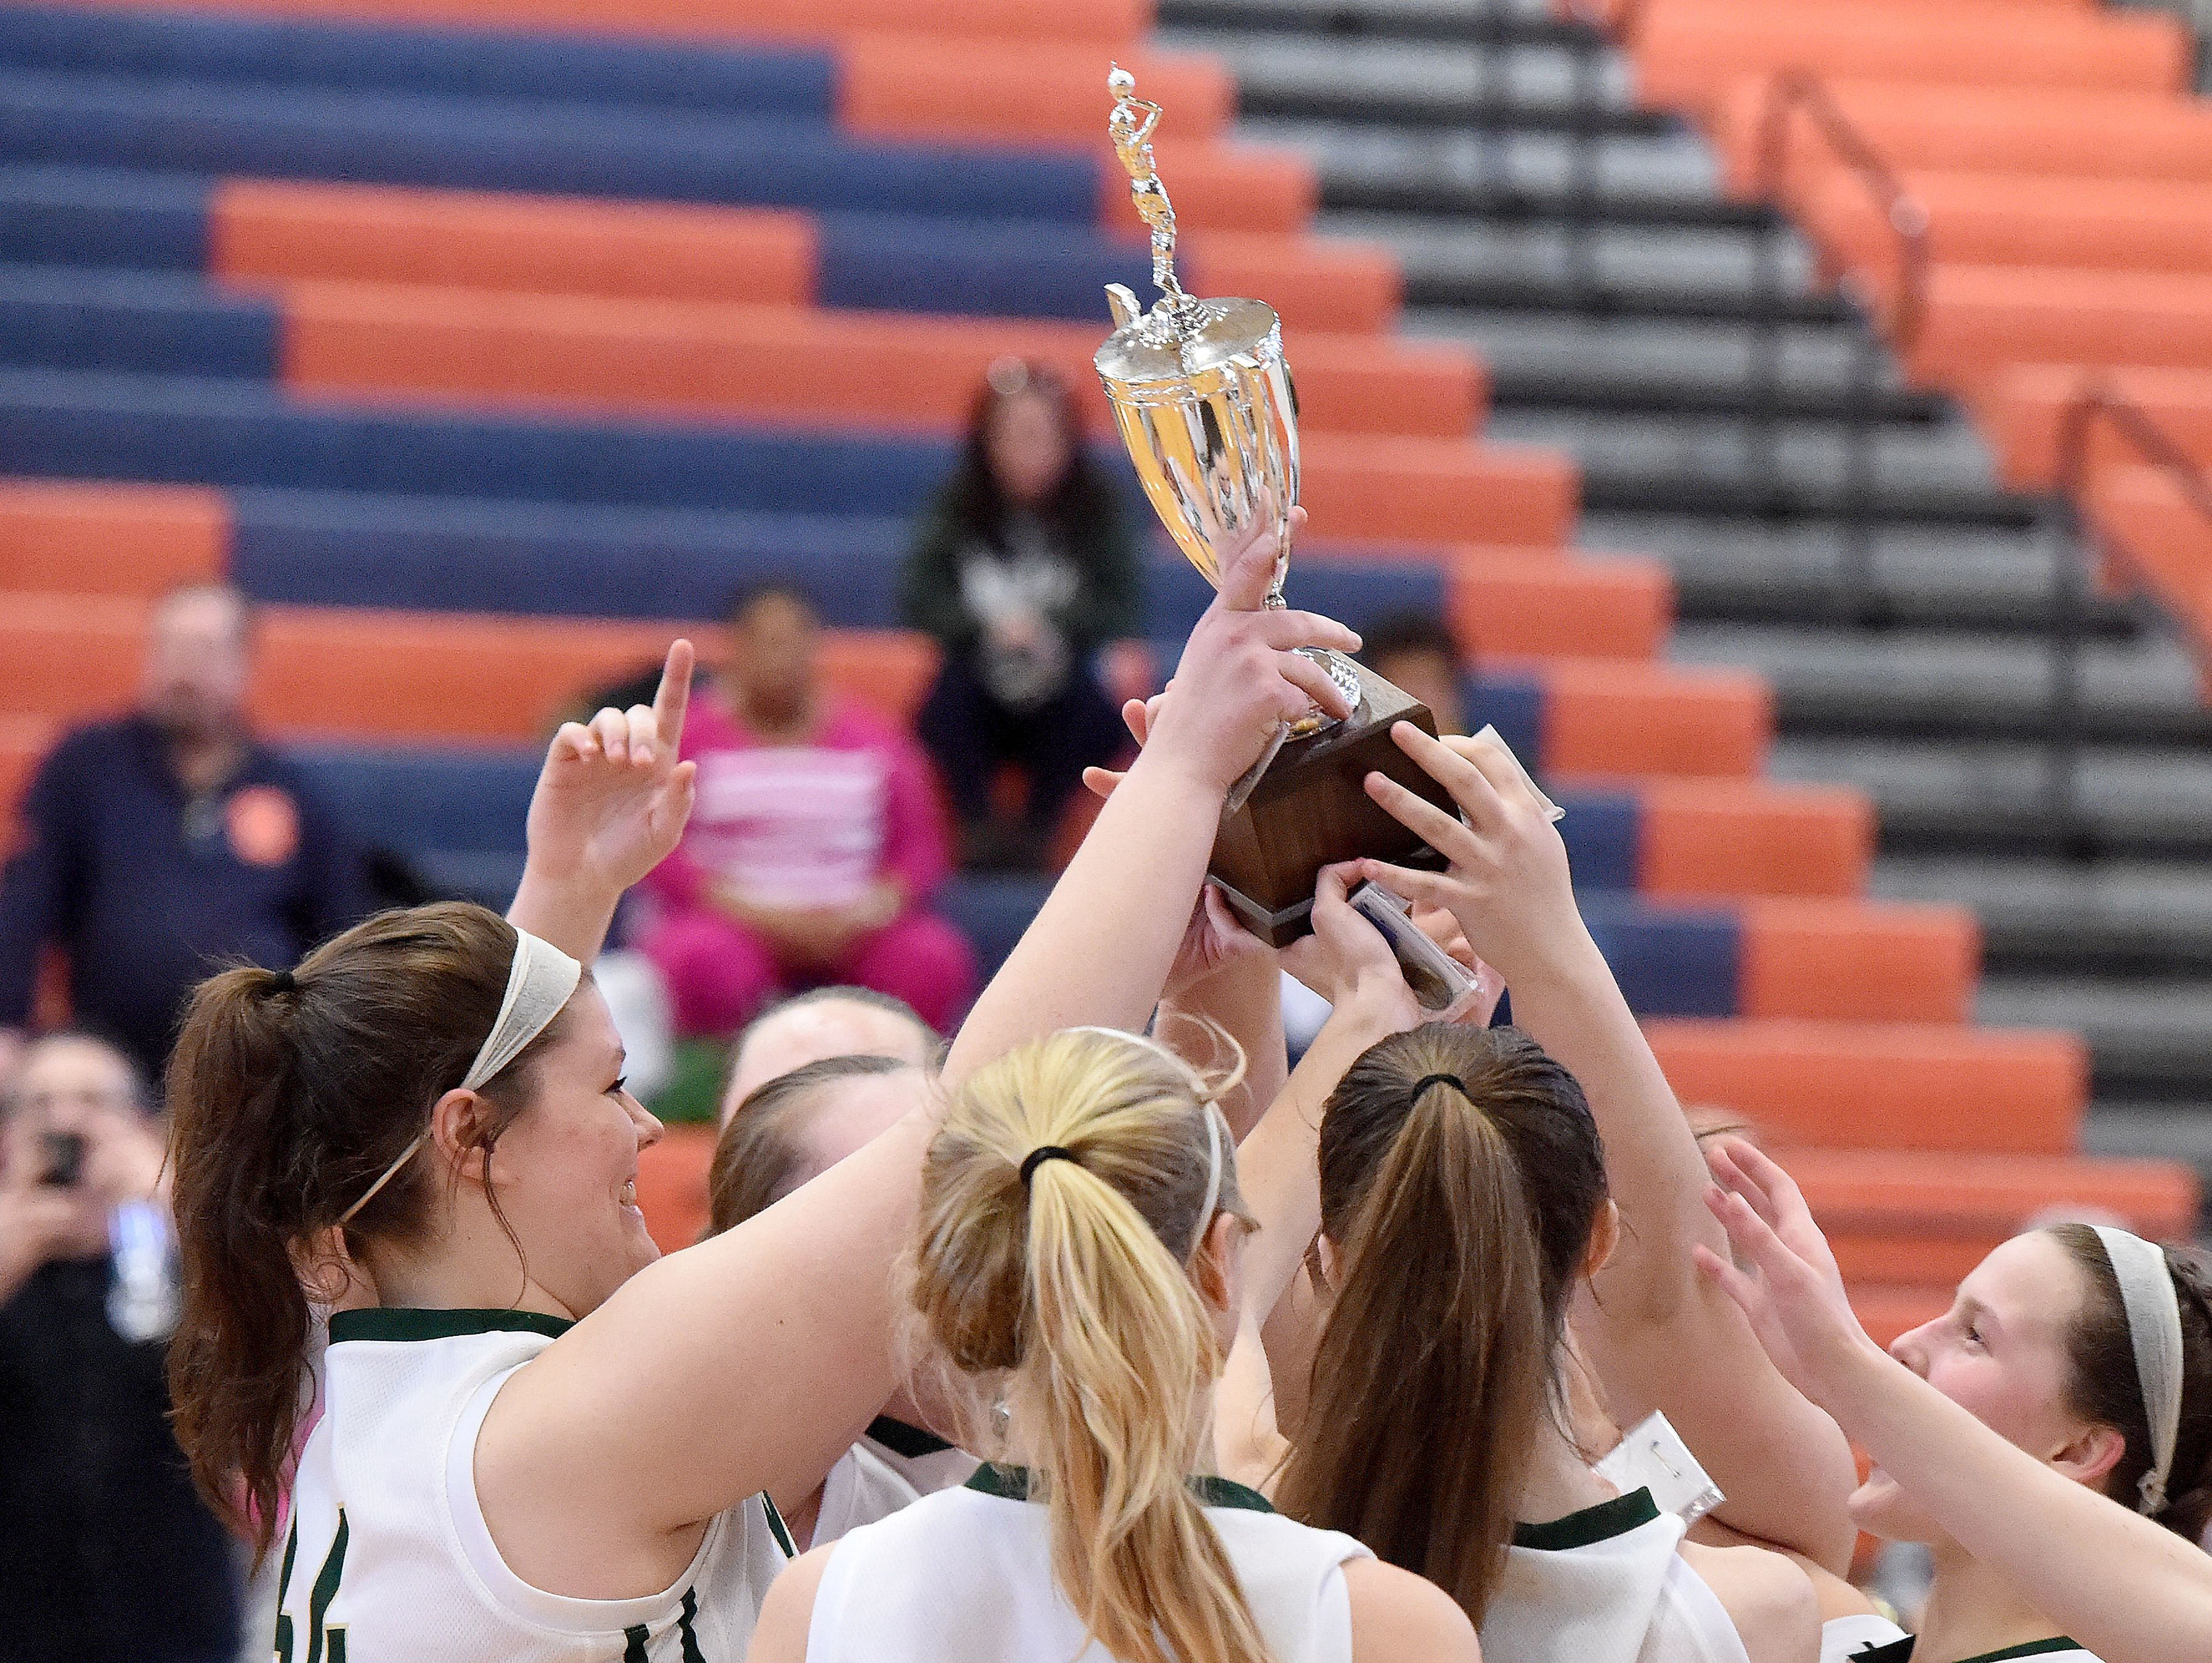 Wilson Memorial players hold up the championship trophy as a team after defeating Buffalo Gap in the Region 2A East girls basketball championship played in Orange on Saturday, Feb. 27, 2016.